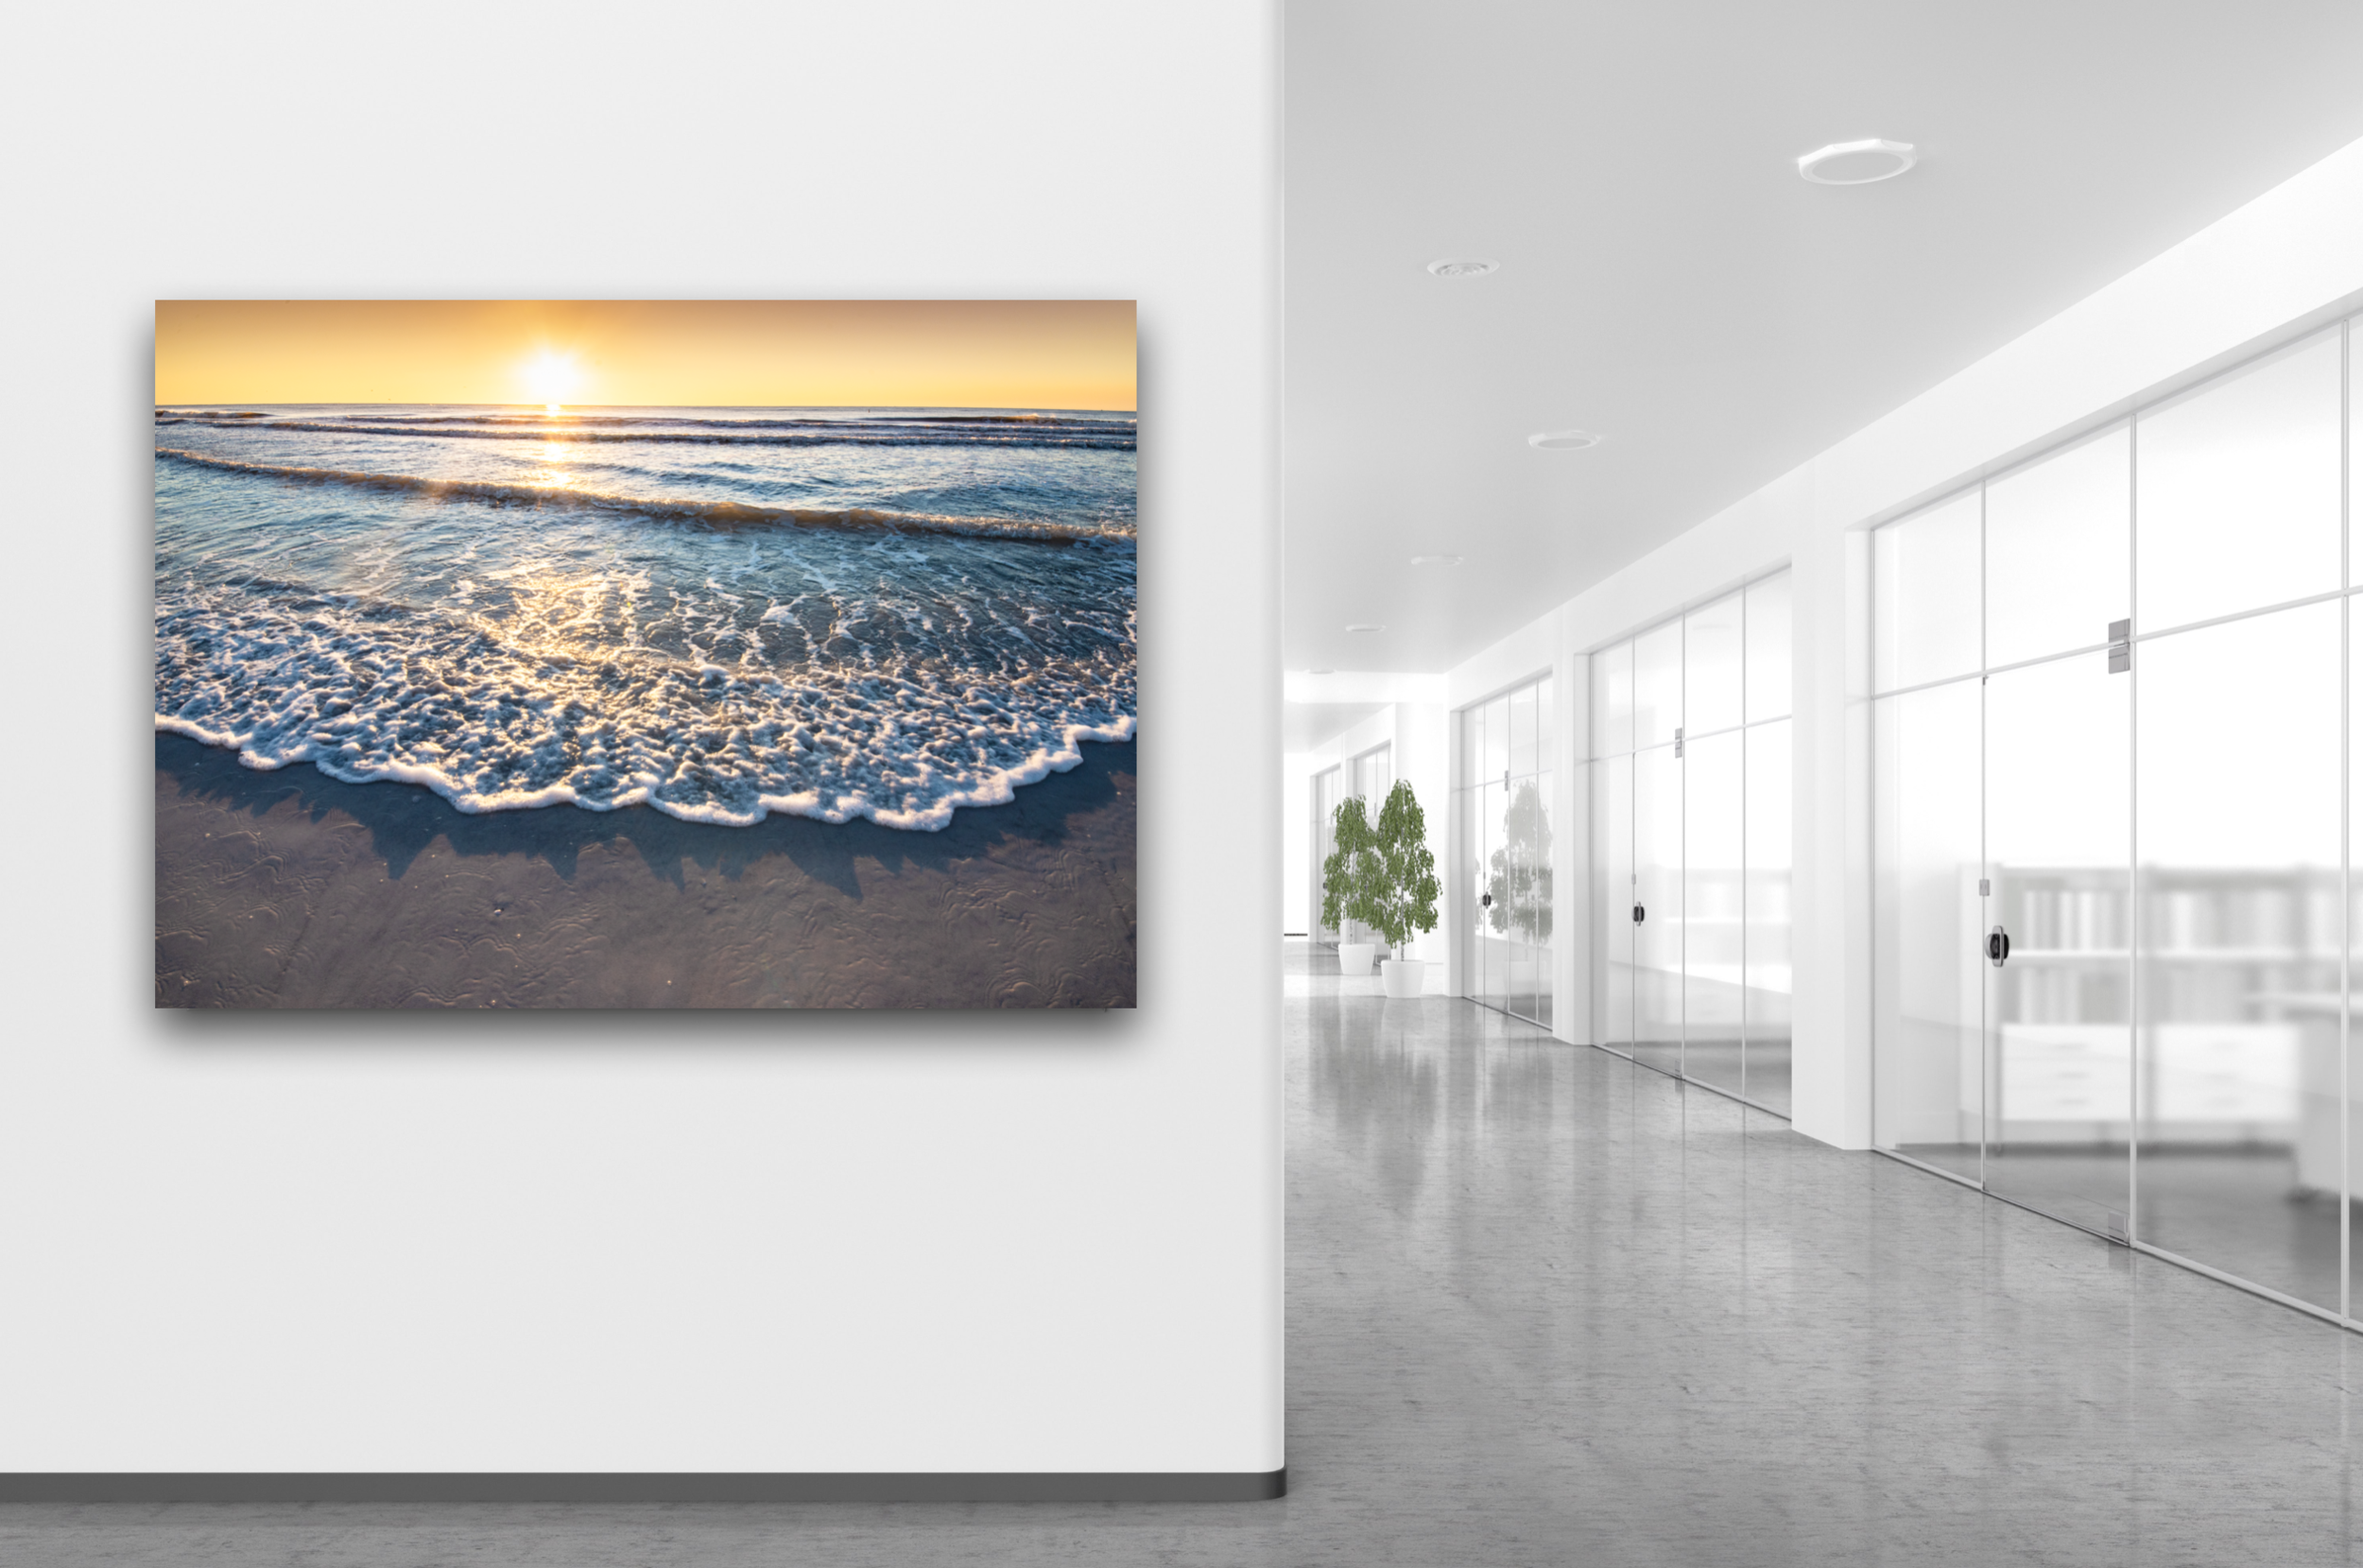 Oceanscape Large Artwork For Office Space Beautiful For Sale by Mary's Mark Photography Mary Parkhill.png